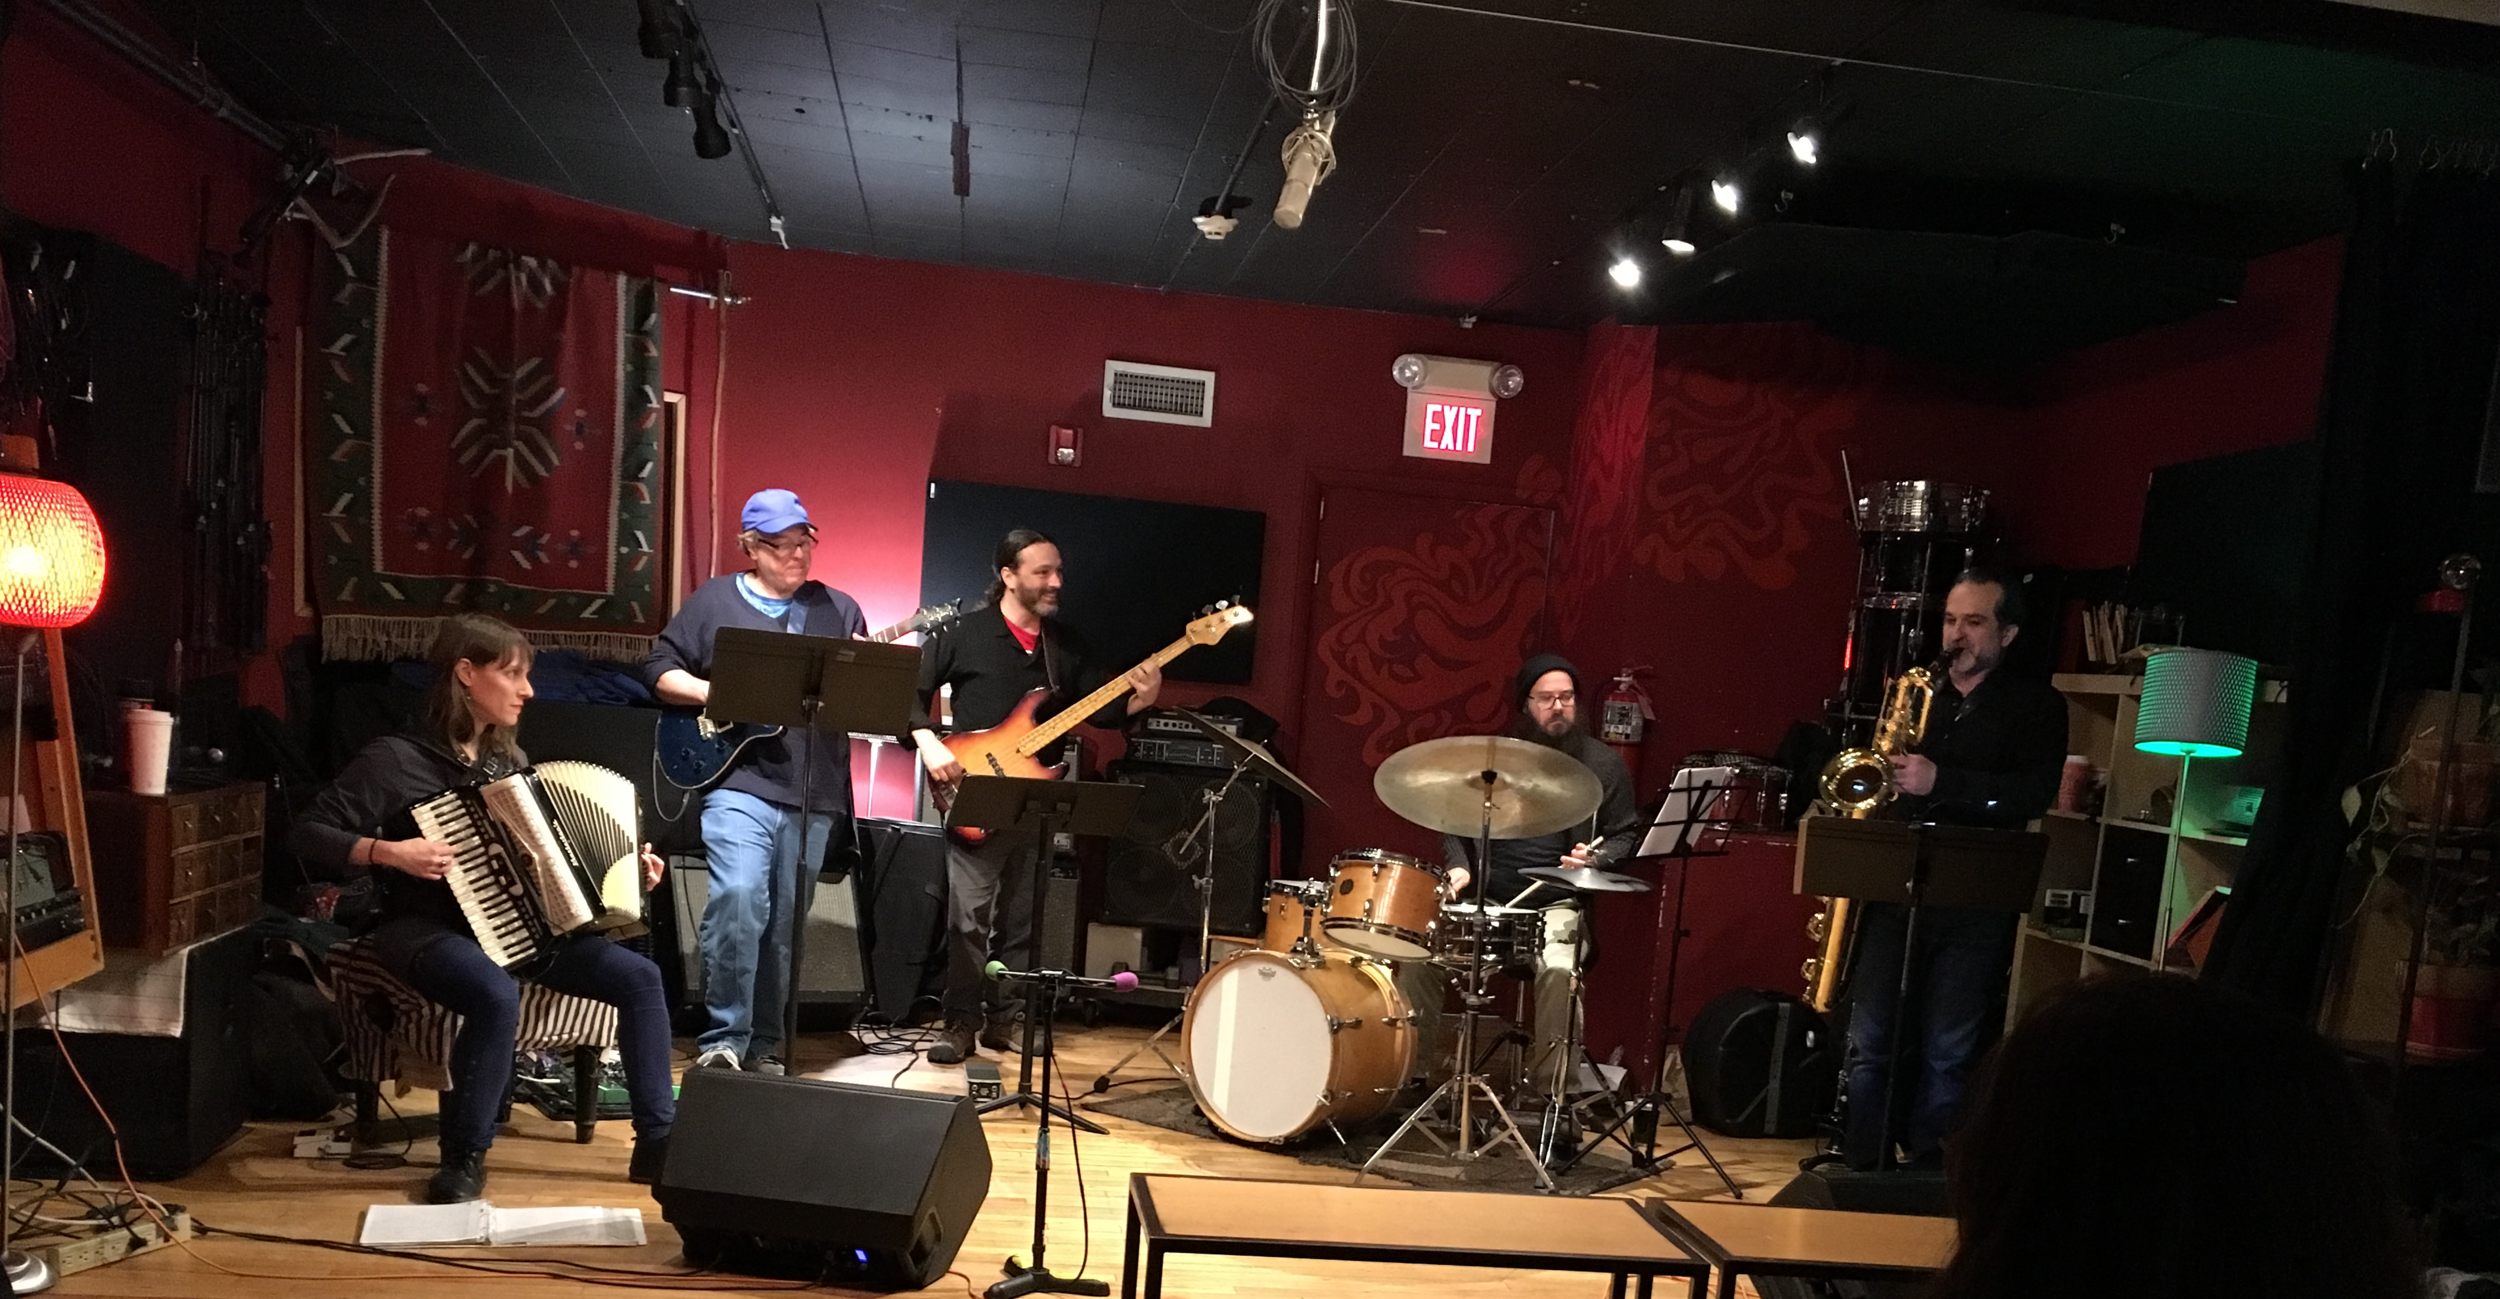 Thanks to Peter Lauria for the photo! L to R: Rachel Koppelman, Larry Mancini, Brian O'Connell, Dylan Jack, Andy Bergman.